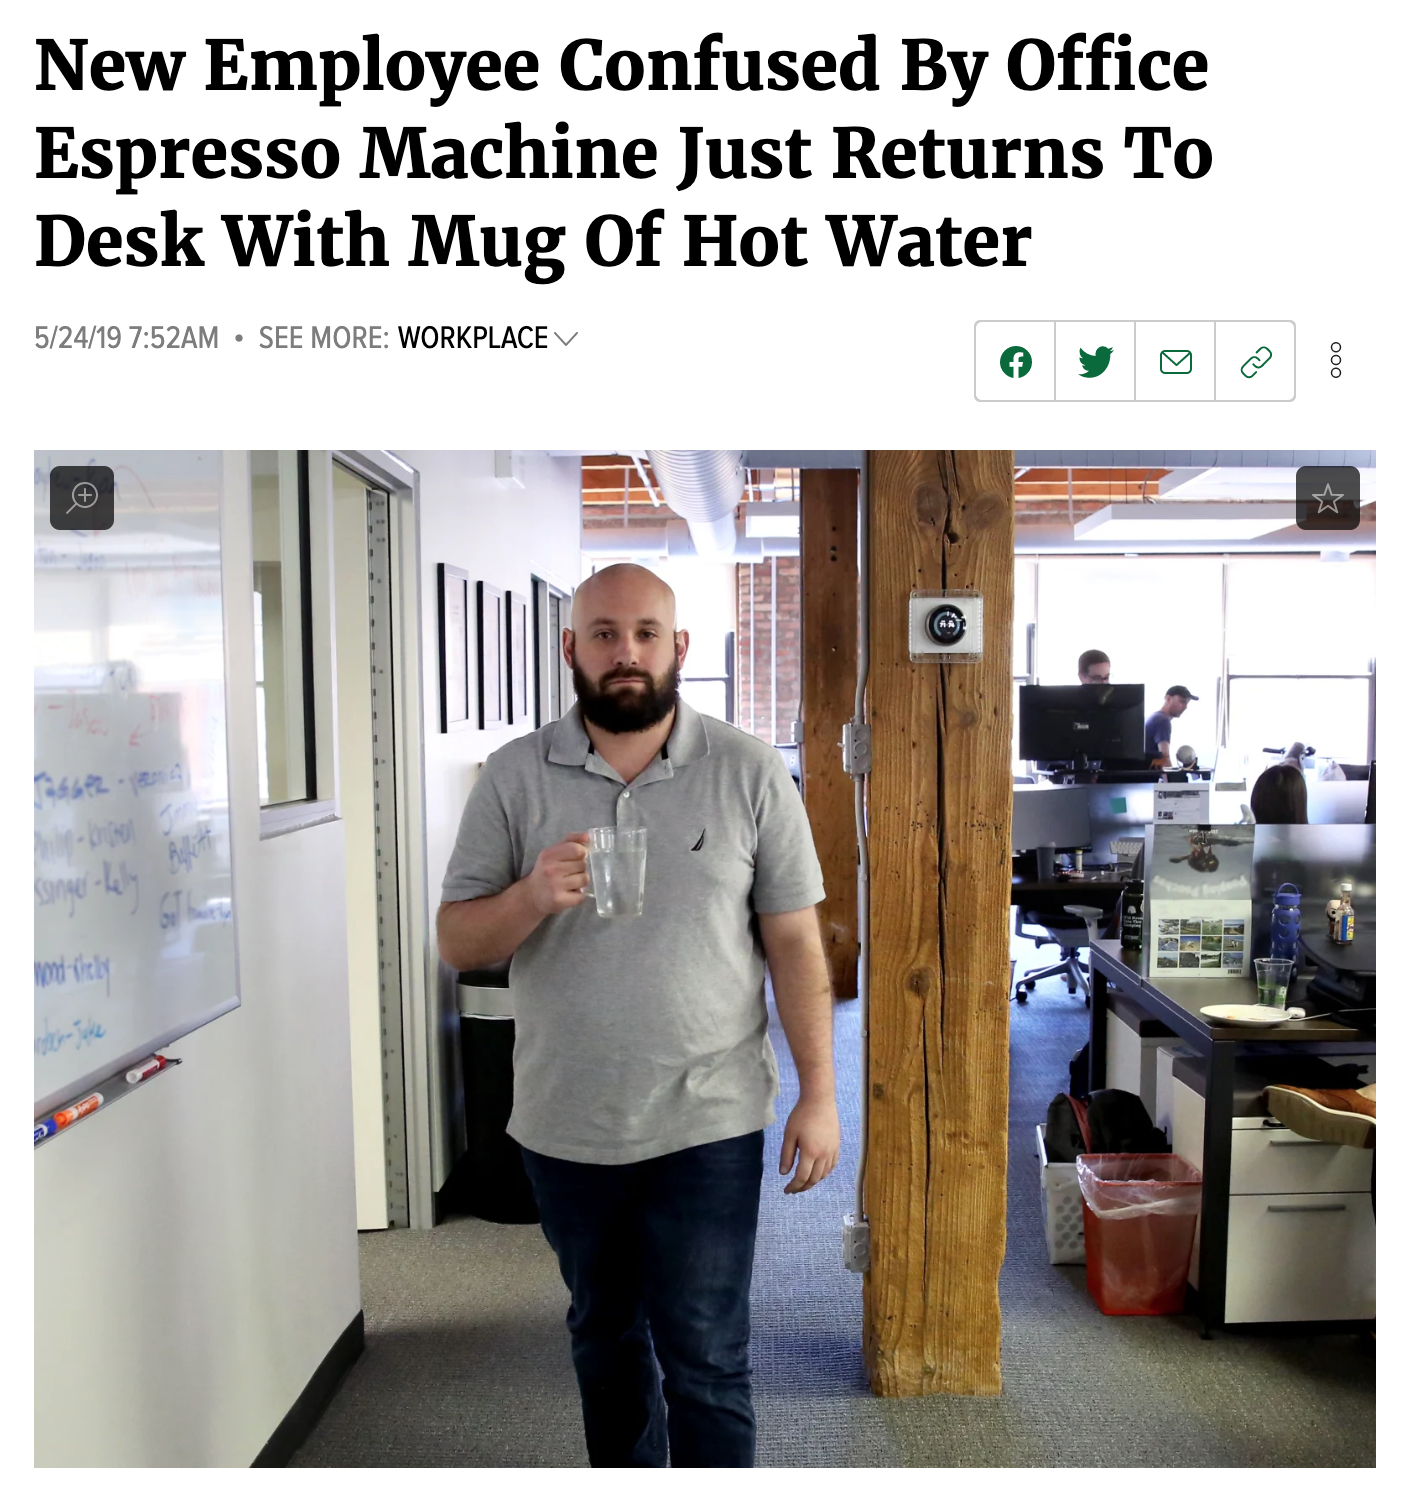 An article about a man confused by an expresso machine.